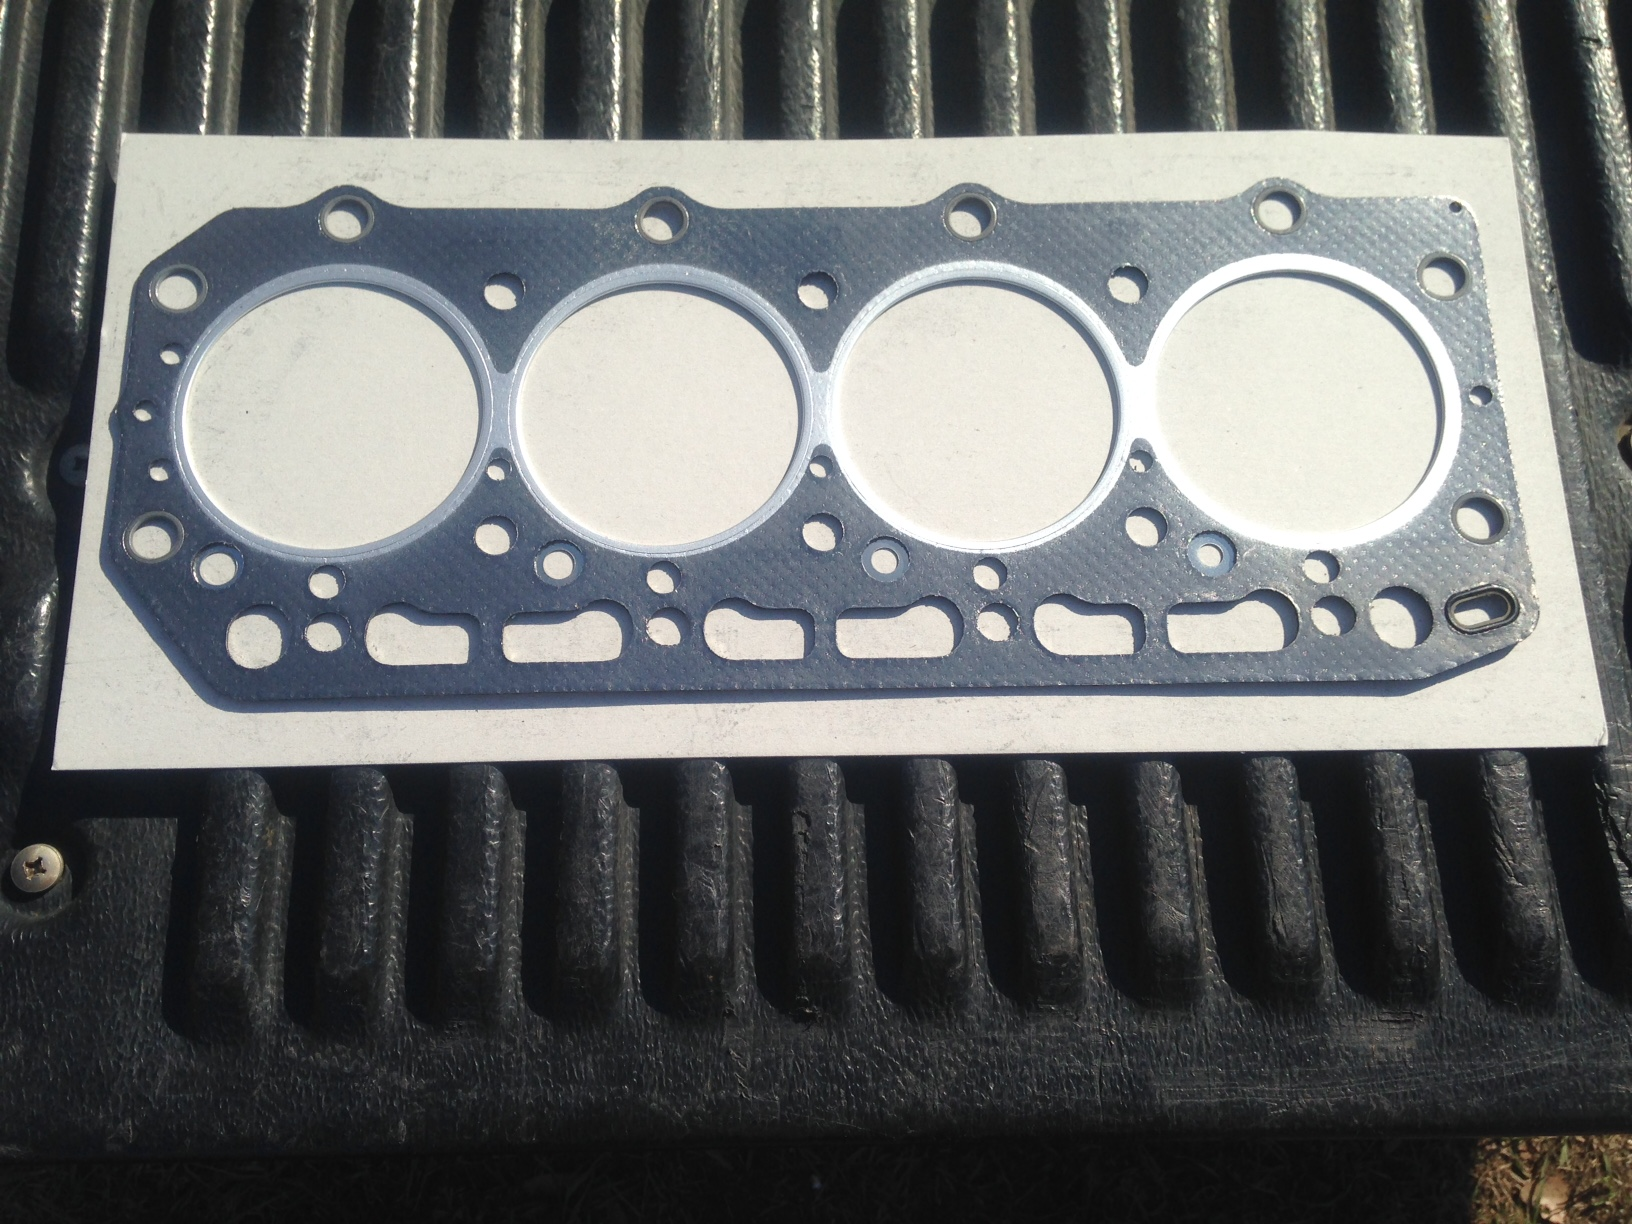 HG-970 Head Gasket JD970, Others